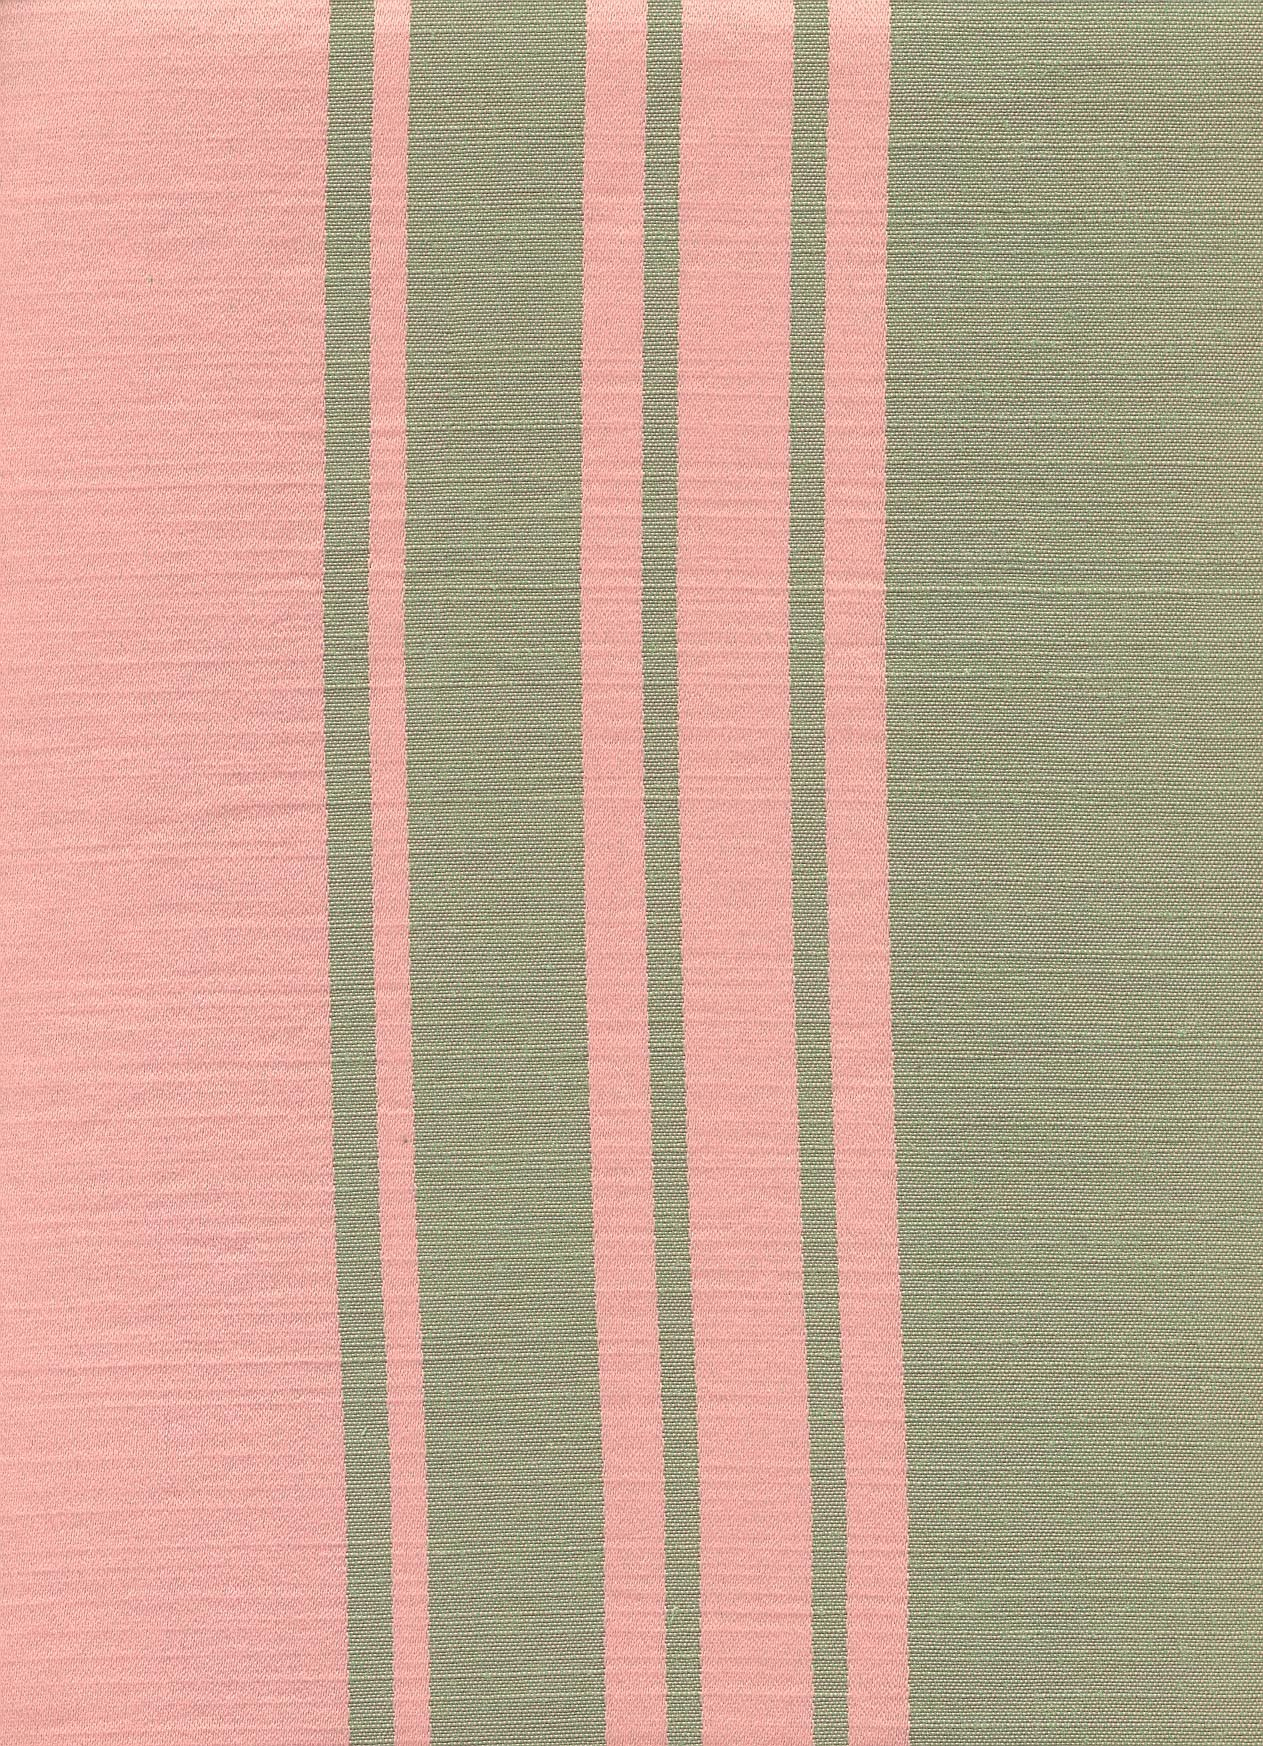 Silken Rose with Green Stripe Bands - CTS77